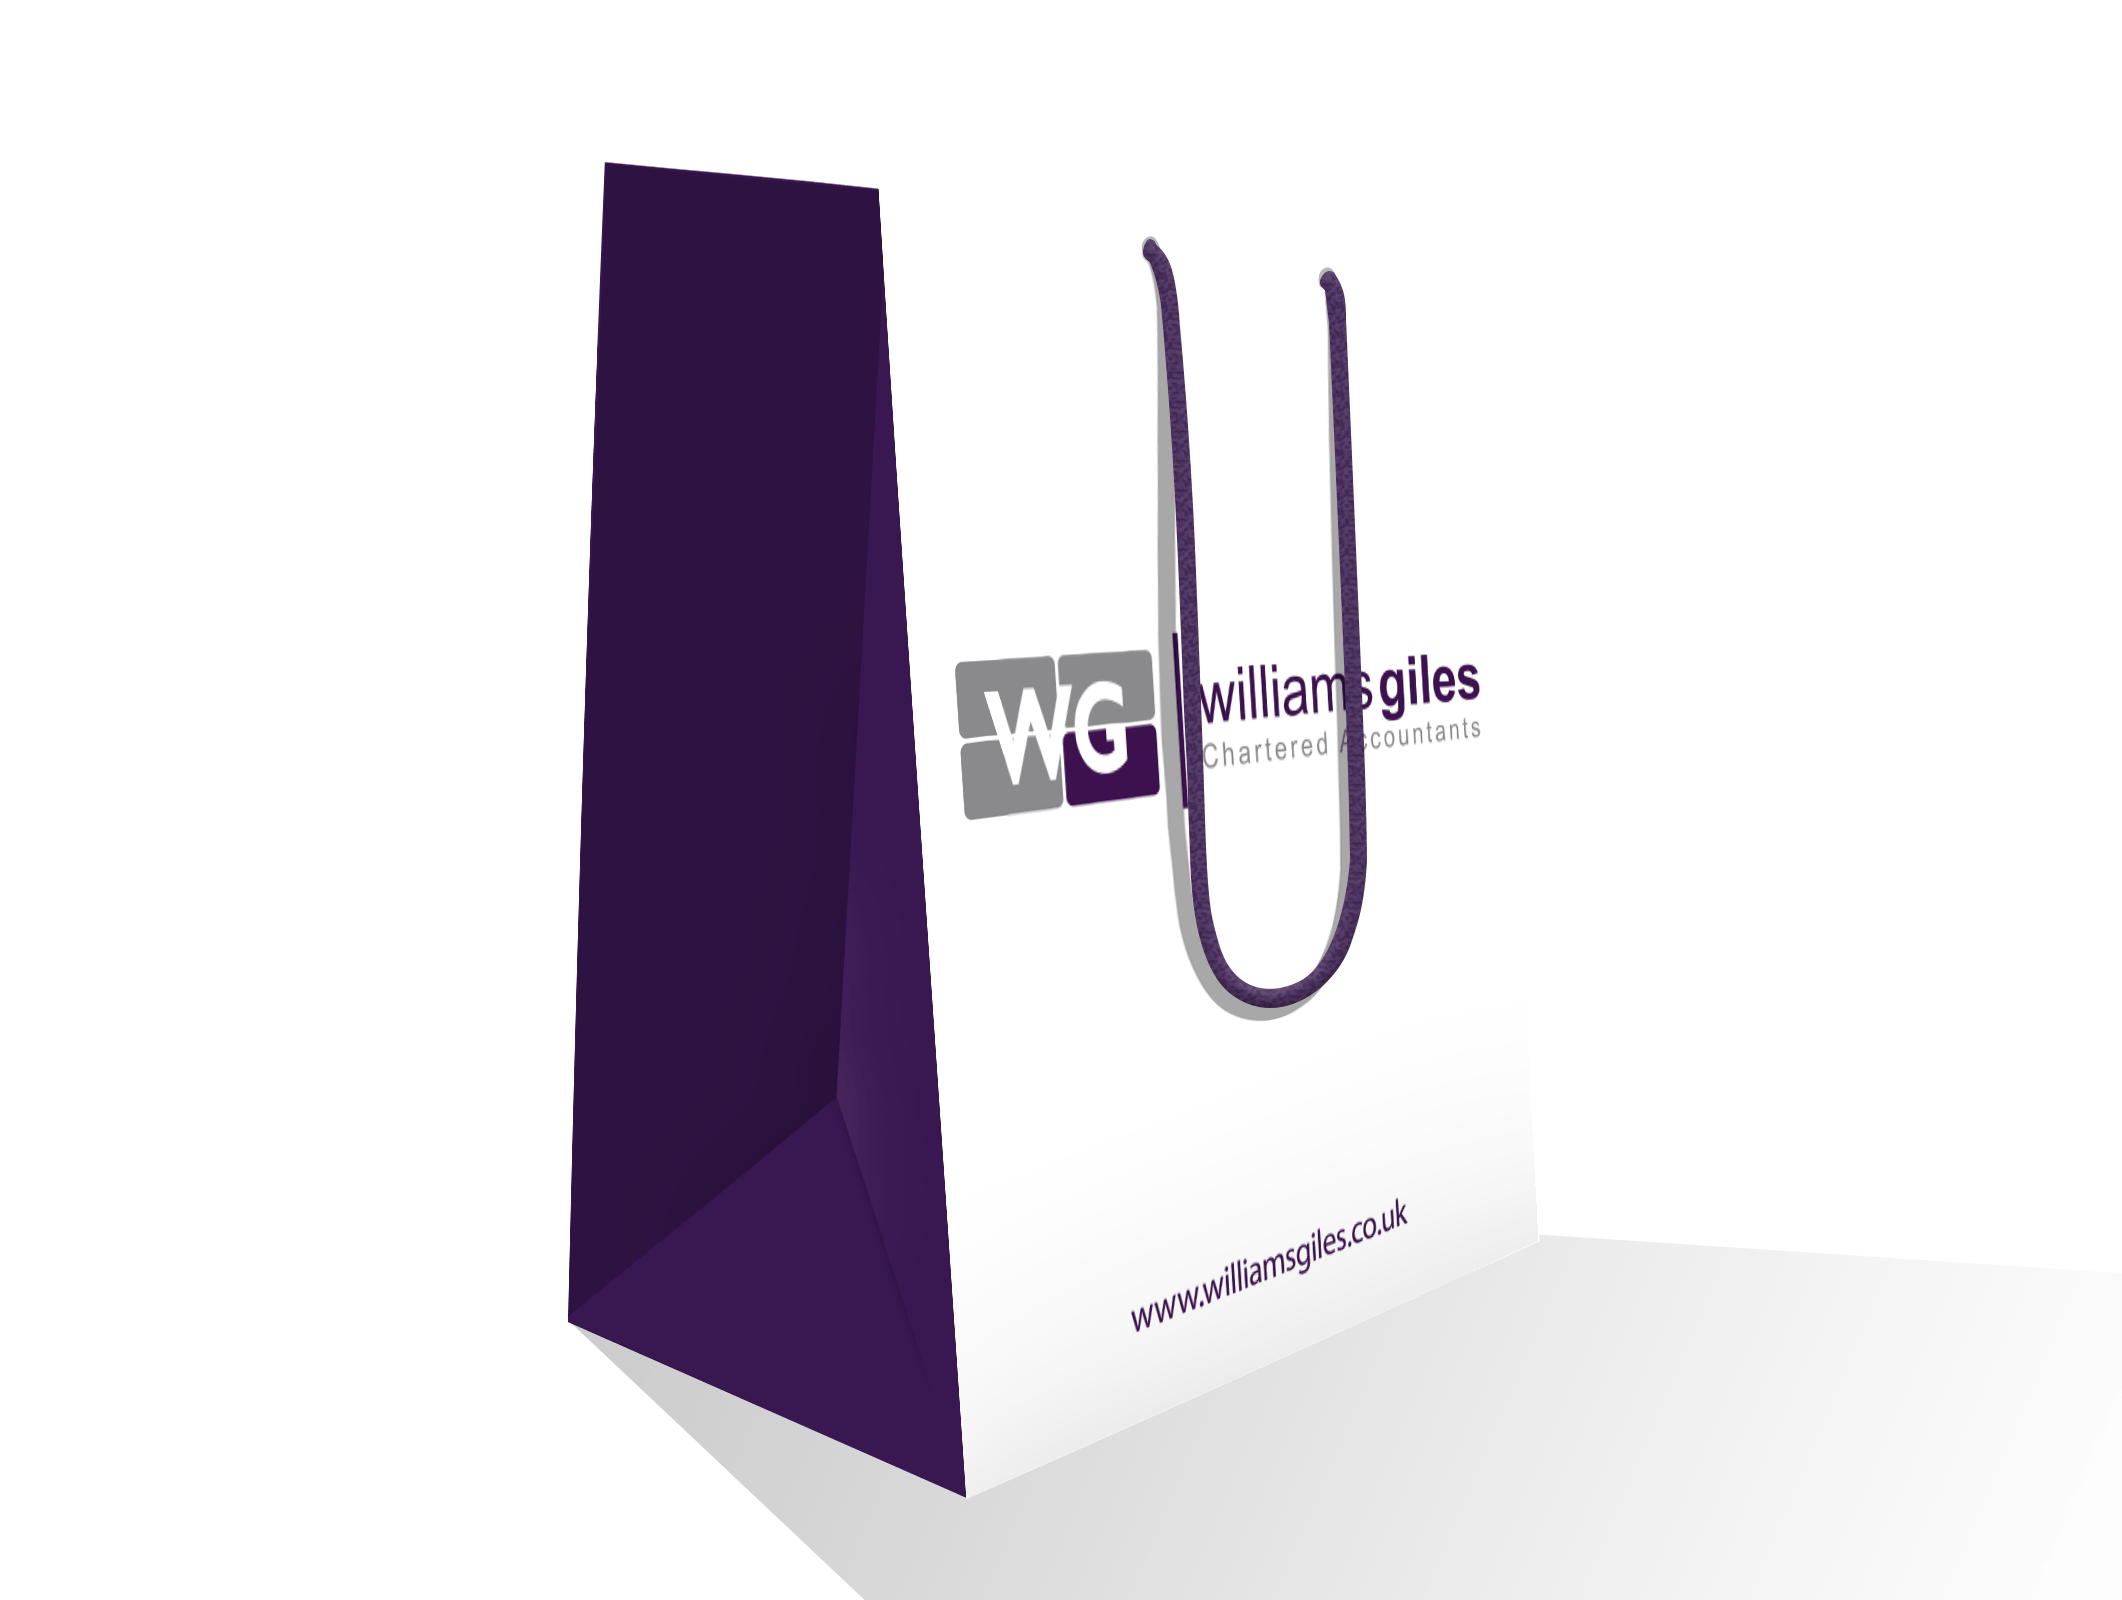 An illustration of the Williams Giles paper bags used for exhibitions. They are white on the front and back with the Williams Giles logo on them, and purple on the sides with a purple handle.